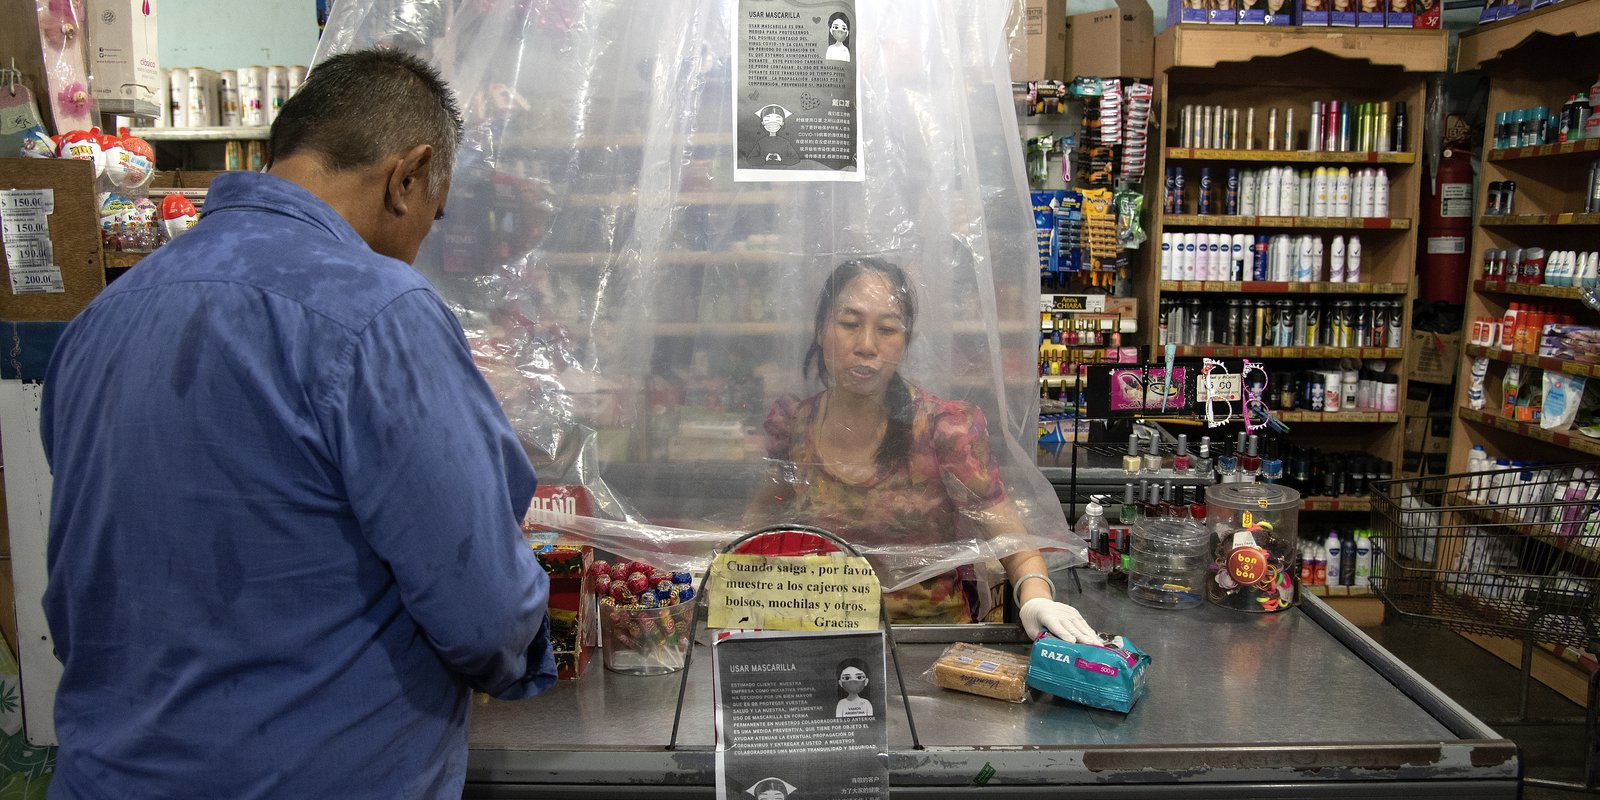 A cashier serves a costumer behind a makeshift plastic curtain due to the spread of COVID-19 in Buenos Aires, Argentina, 14 March 2020 (Photo by Lalo Yasky/Getty Images).